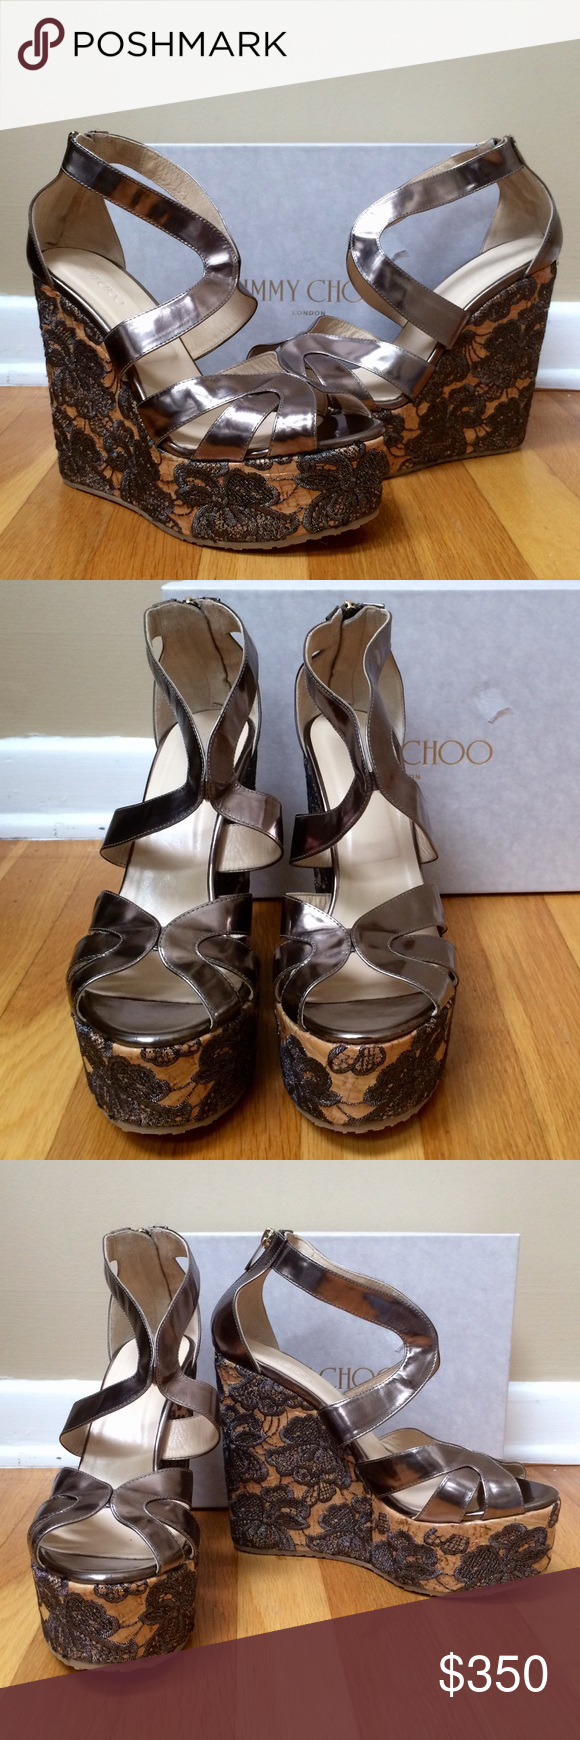 dd8d452759e JIMMY CHOO Size 41 Leather Parrow Platform Wedges Jimmy Choo Bronze Leather   Parrow  Platform